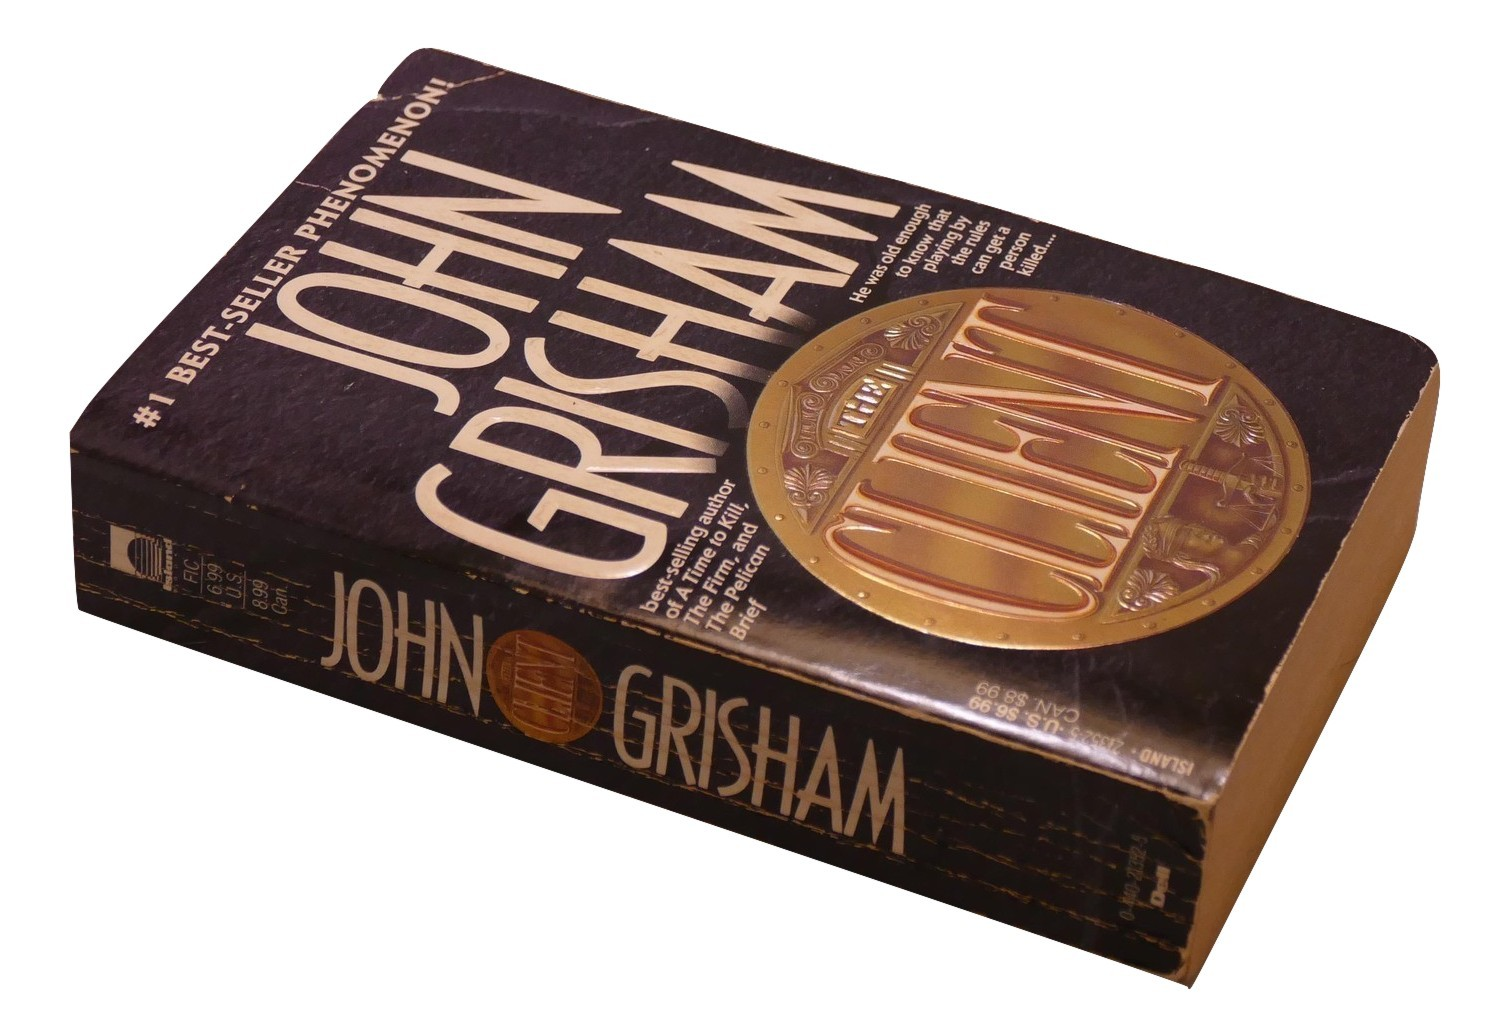 Primary image for John Grisham The Client Paperback Book Fiction